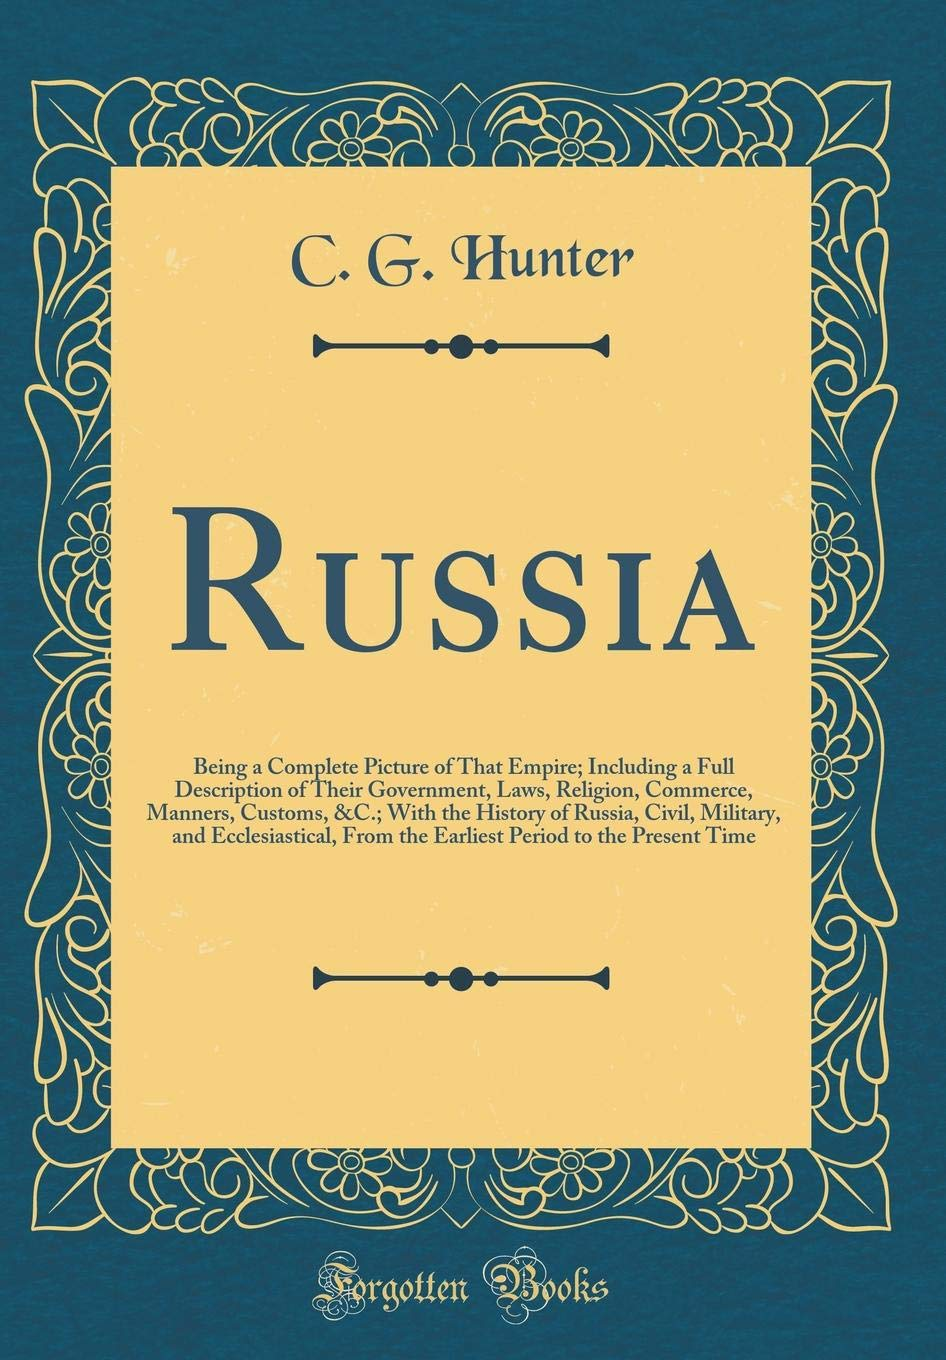 Russia: Being a Complete Picture of That Empire; Including a Full Description of Their Government, Laws, Religion, Commerce, Manners, Customs, &C.; ... From the Earliest Period to the Present Ti PDF